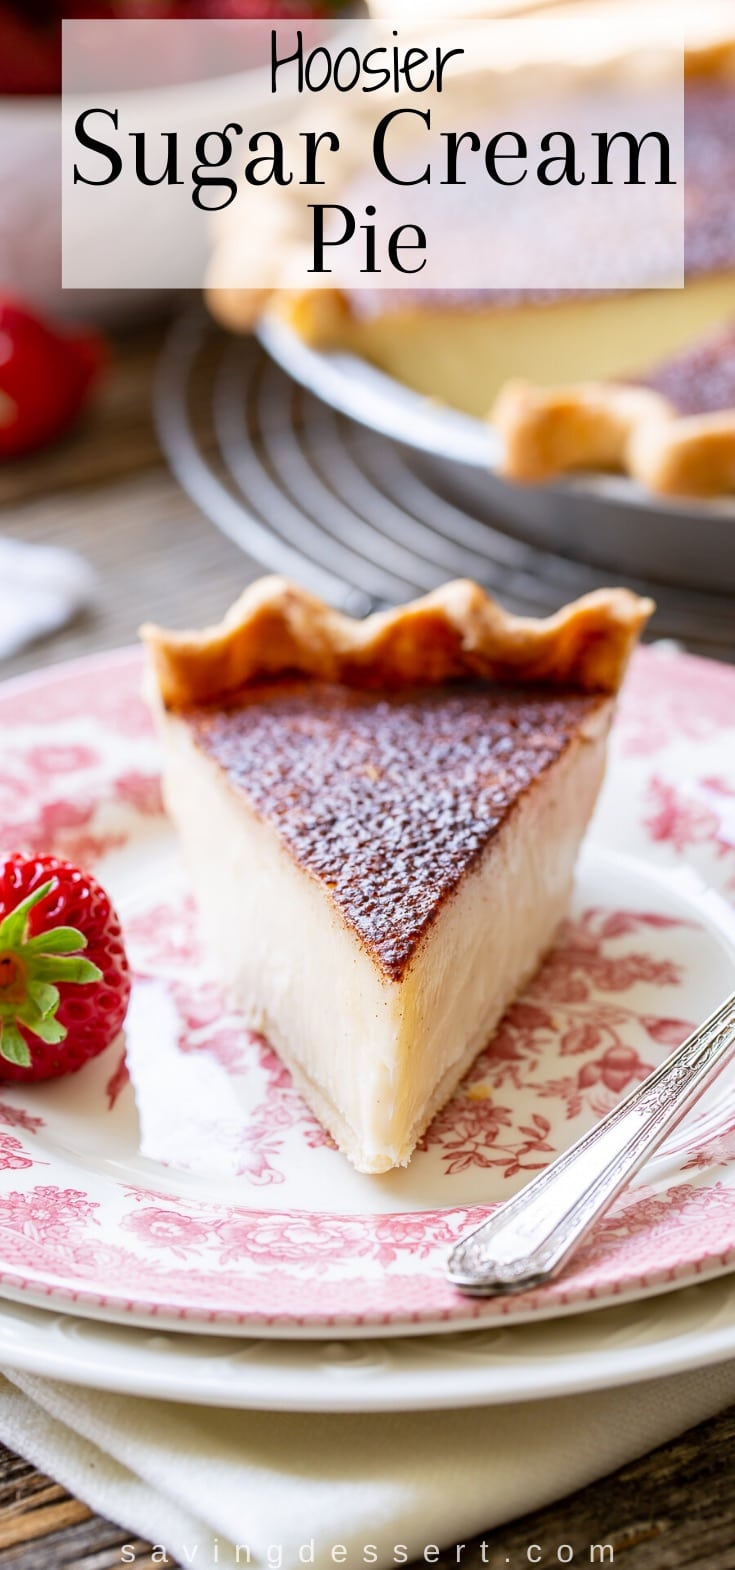 A slice of Hoosier Sugar Cream Pie on a plate served with strawberries